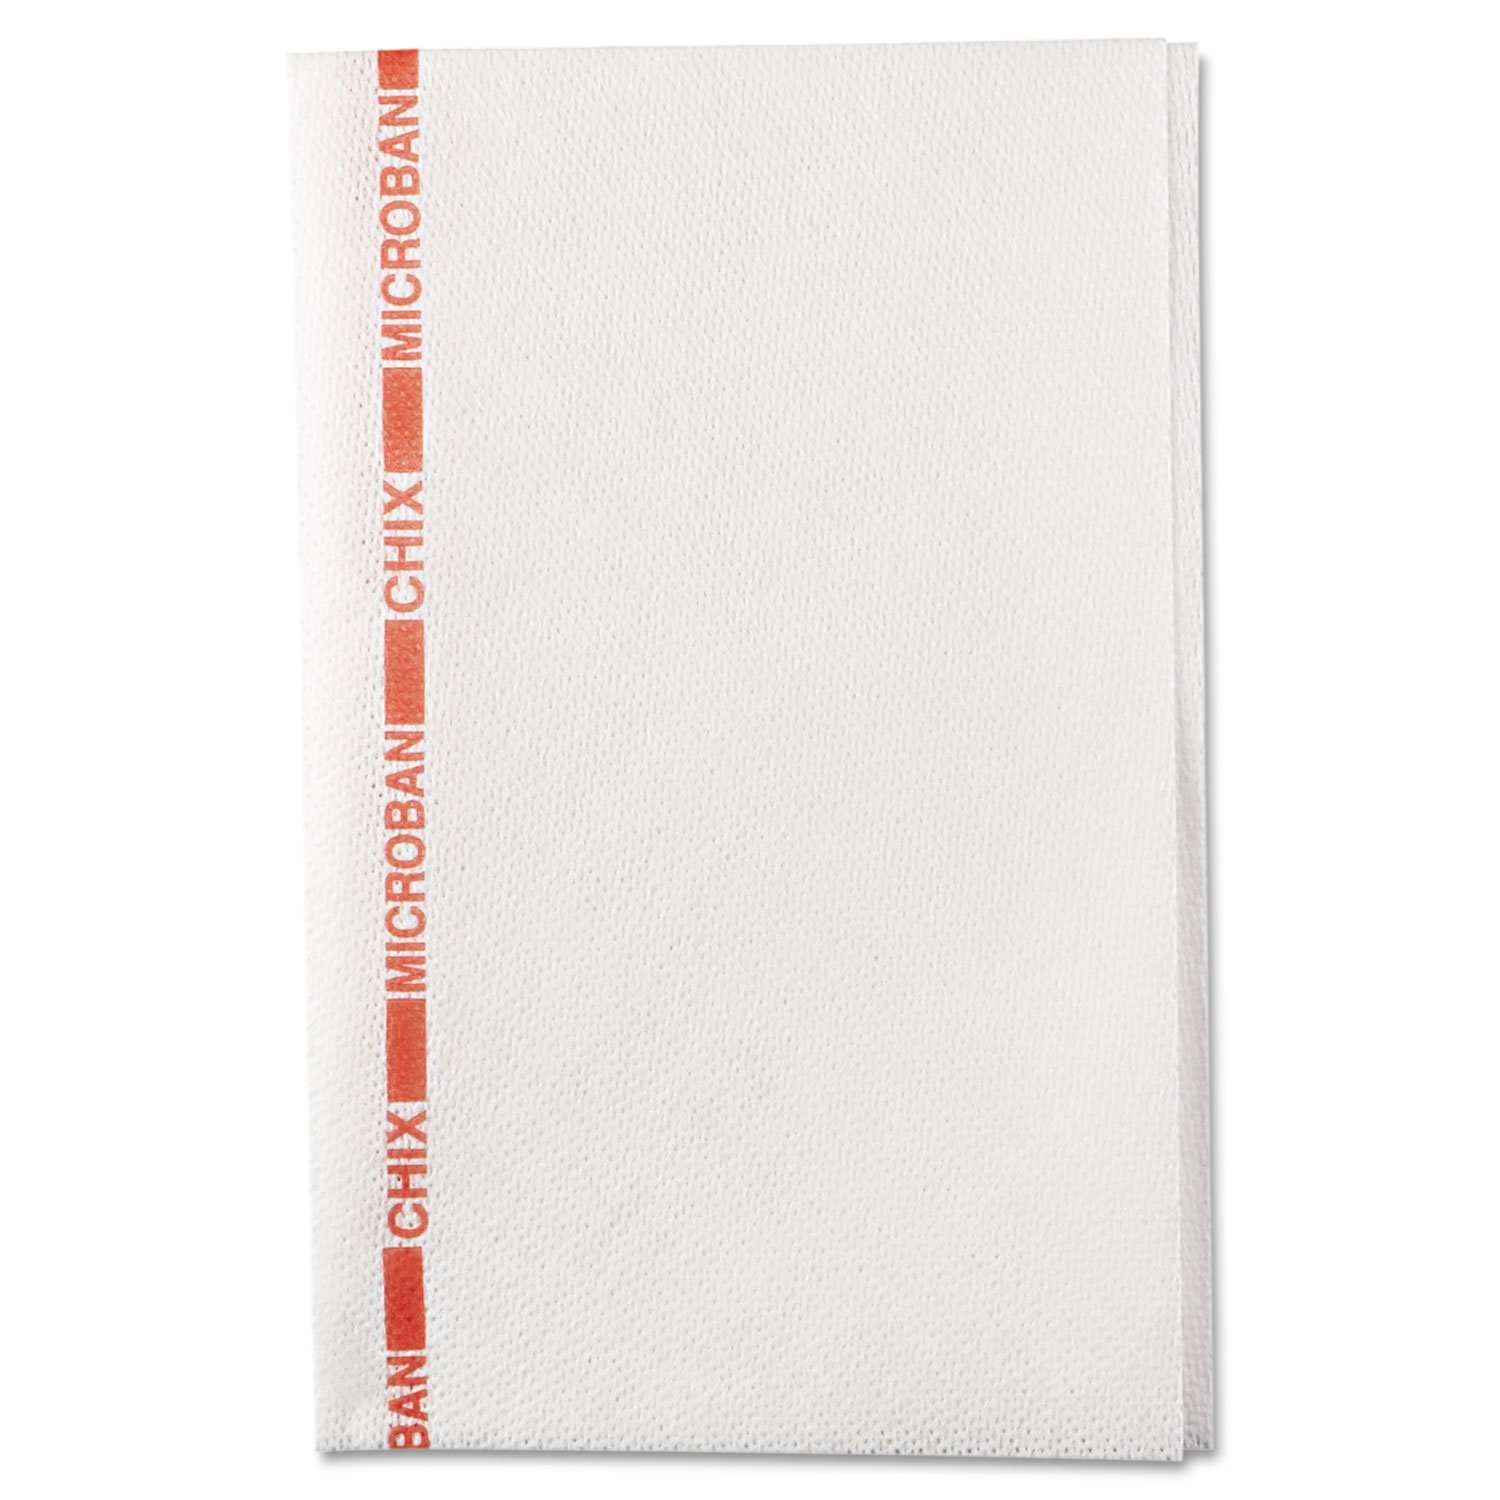 Chix 8252 Food Service Towels, 13 x 21, Cotton, White/Red, 150/Carton by Chicopee (Image #3)